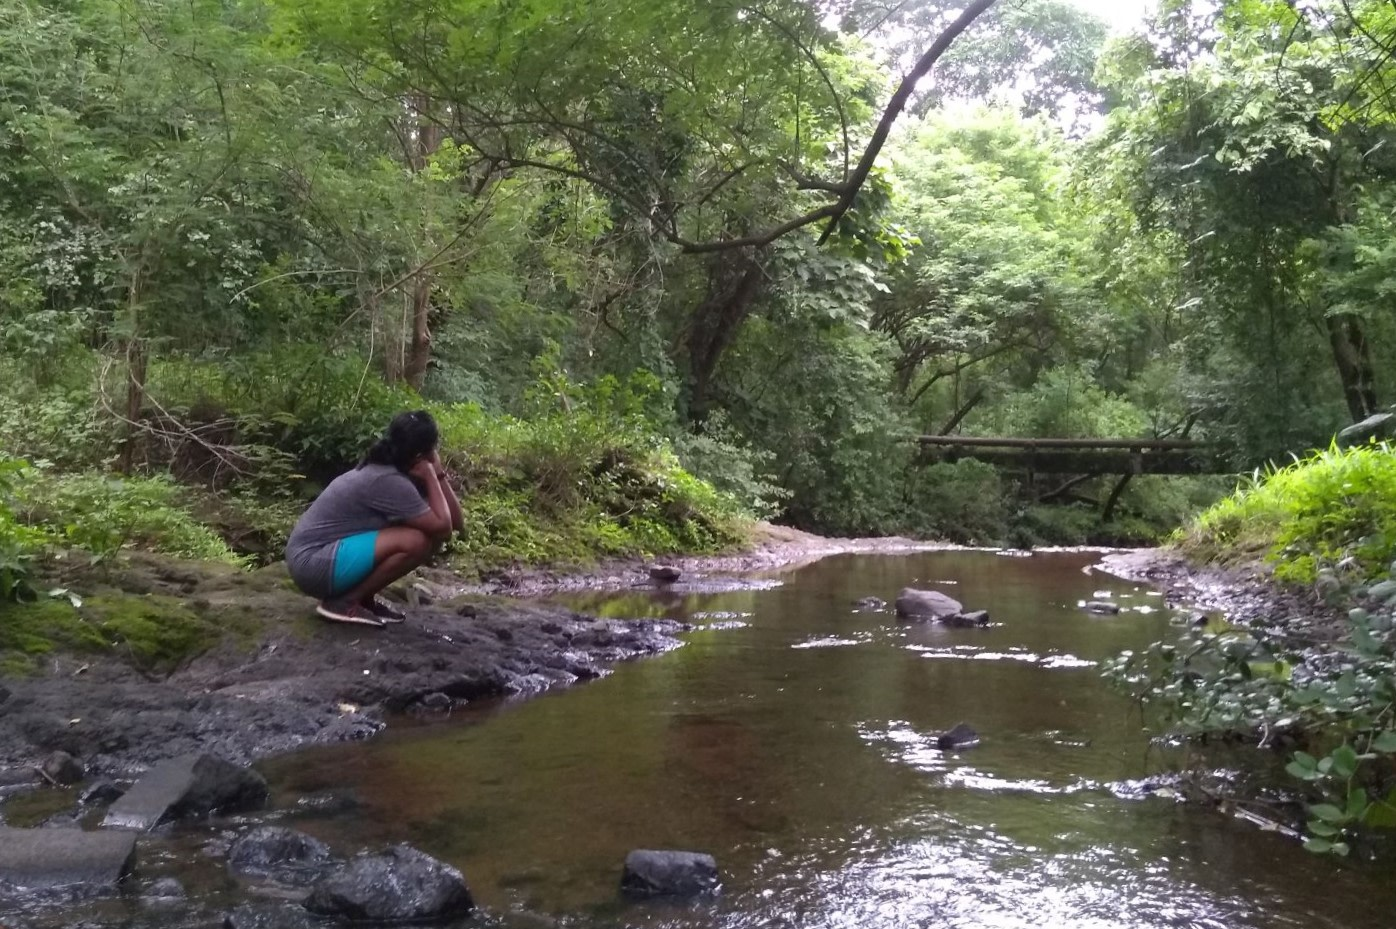 After the initial onslaught of the monsoon recedes, the flow of the stream ebbs, and one can experience the sights and sounds of the forest. Photo: Anirudh Nair